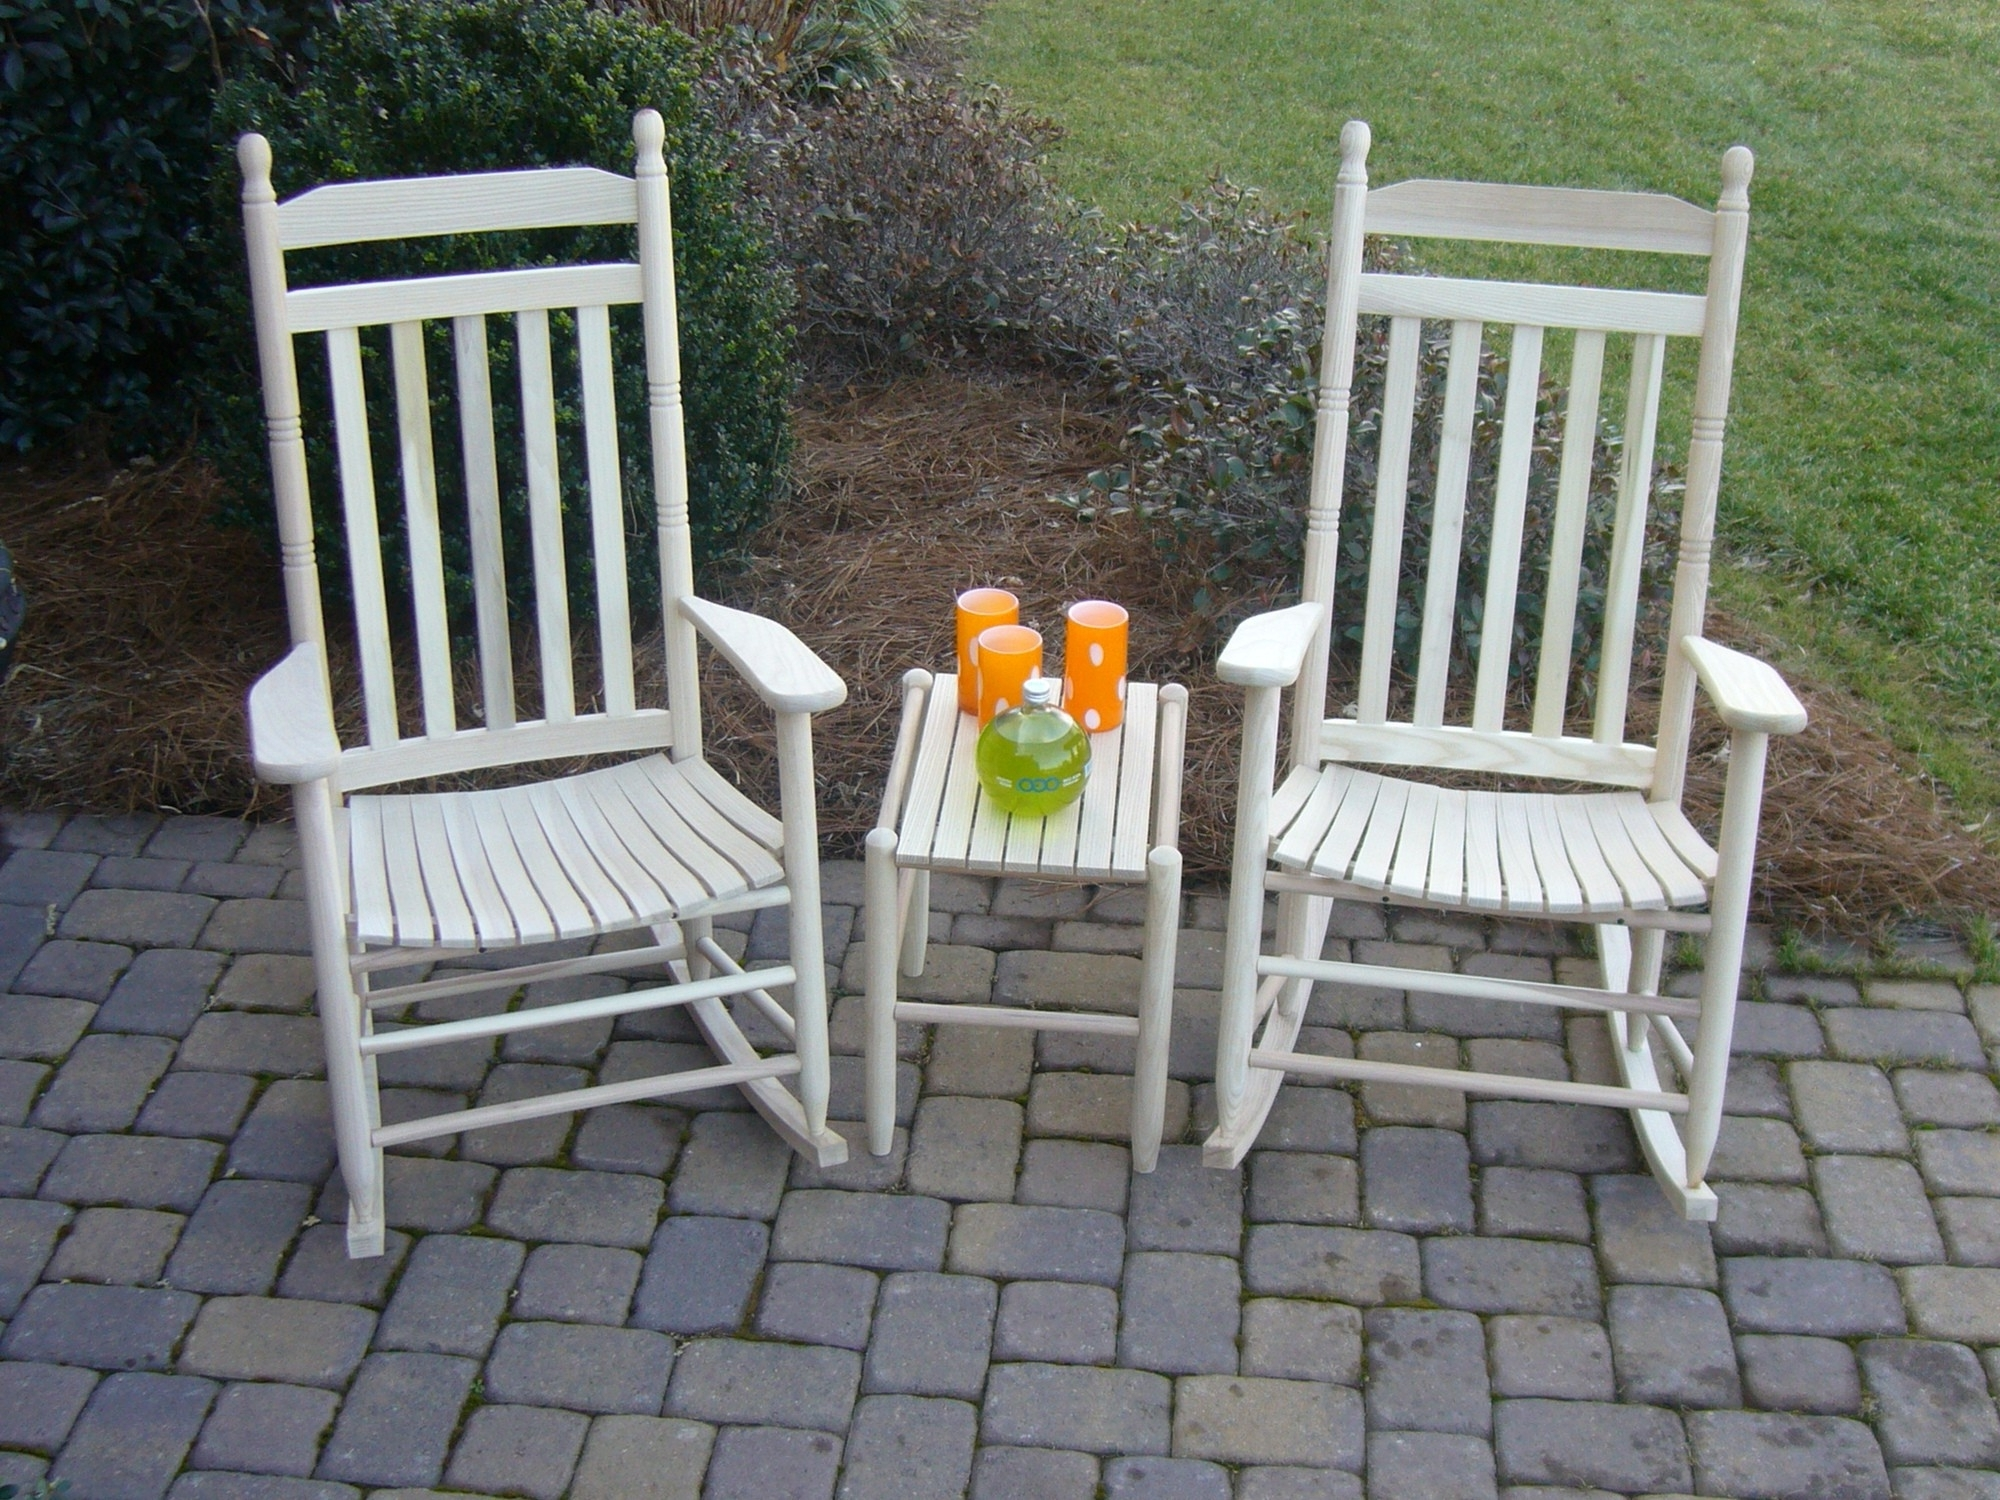 Wooden Outdoor Rocking Chairs For Modern Dixie Seating Standard Within Newest Patio Rocking Chairs And Table (View 15 of 15)